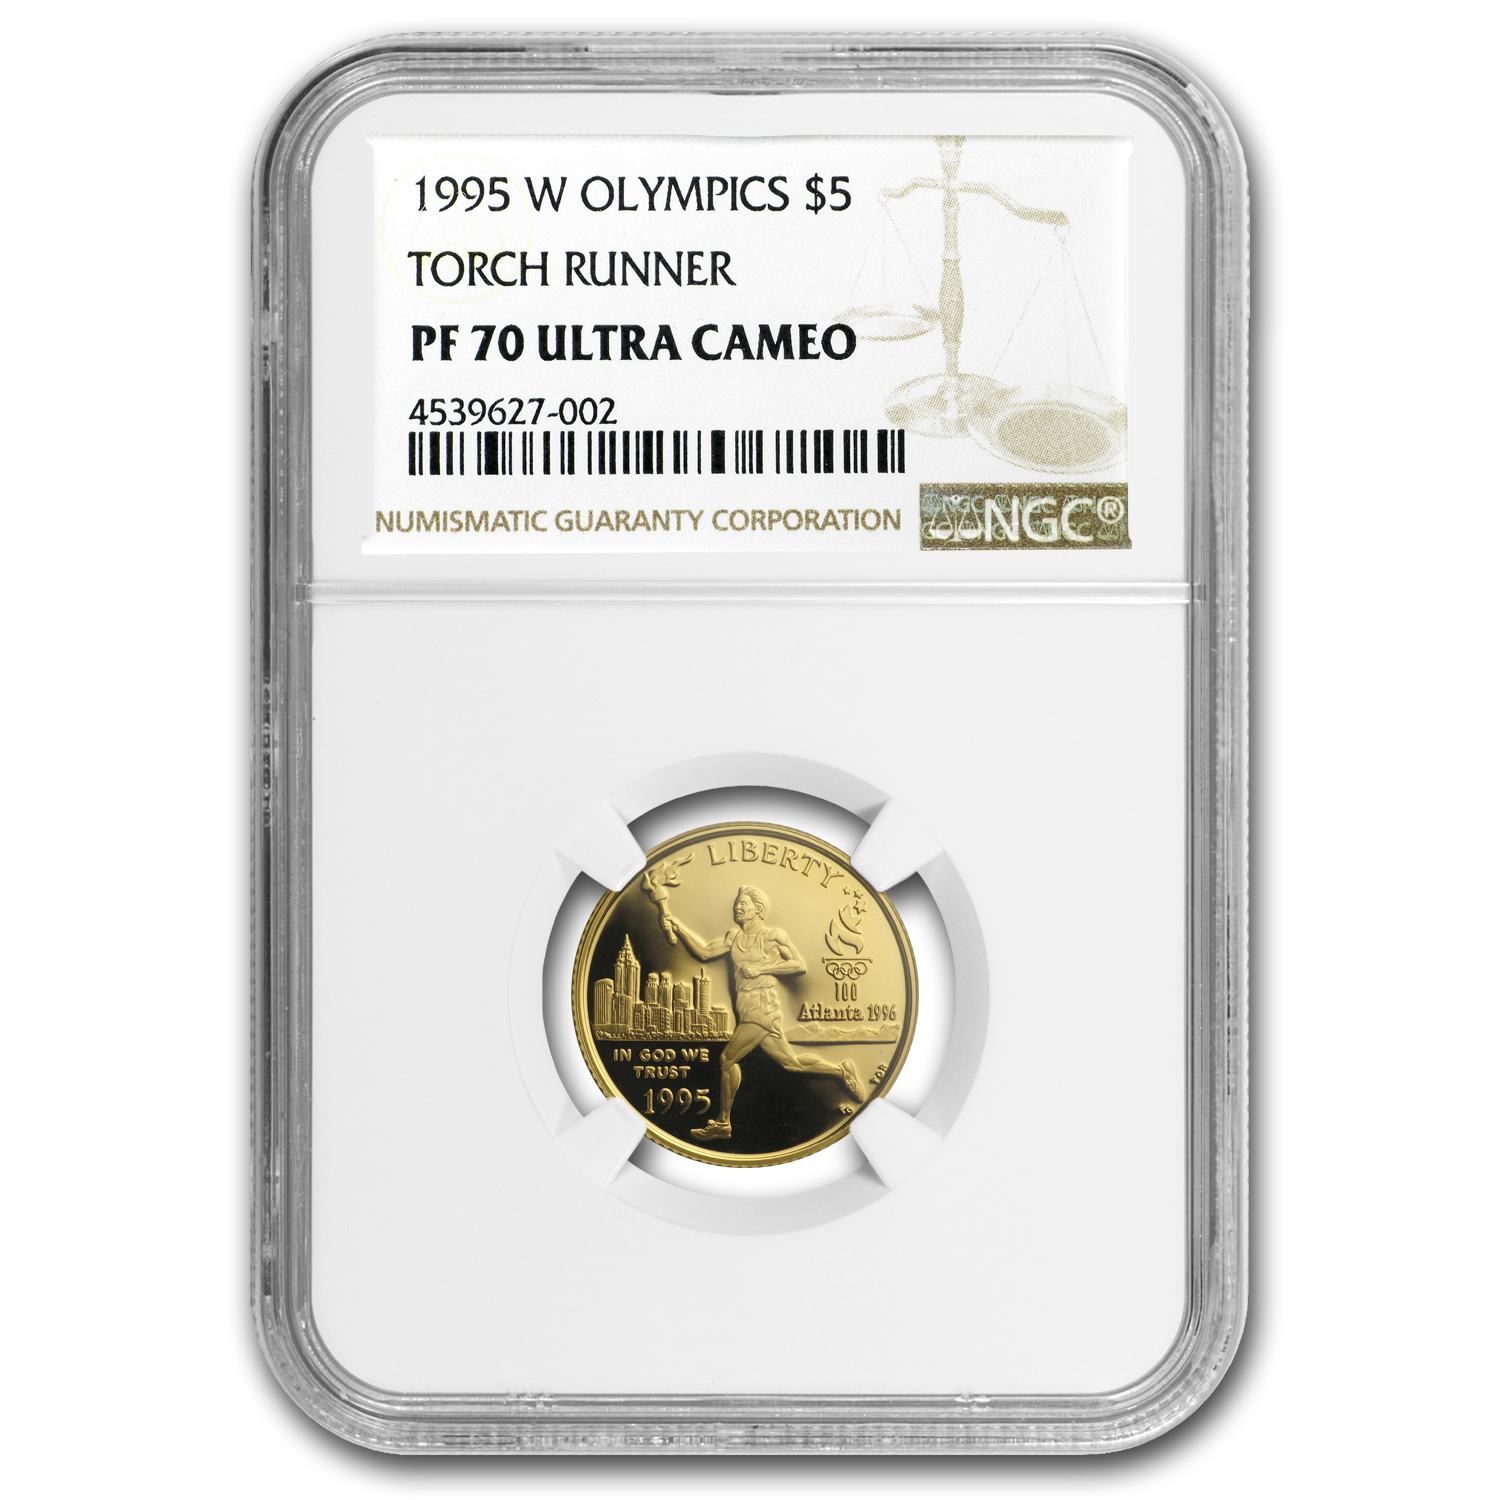 1995-W Gold $5 Commem Olympic Torch Runner PF-70 NGC